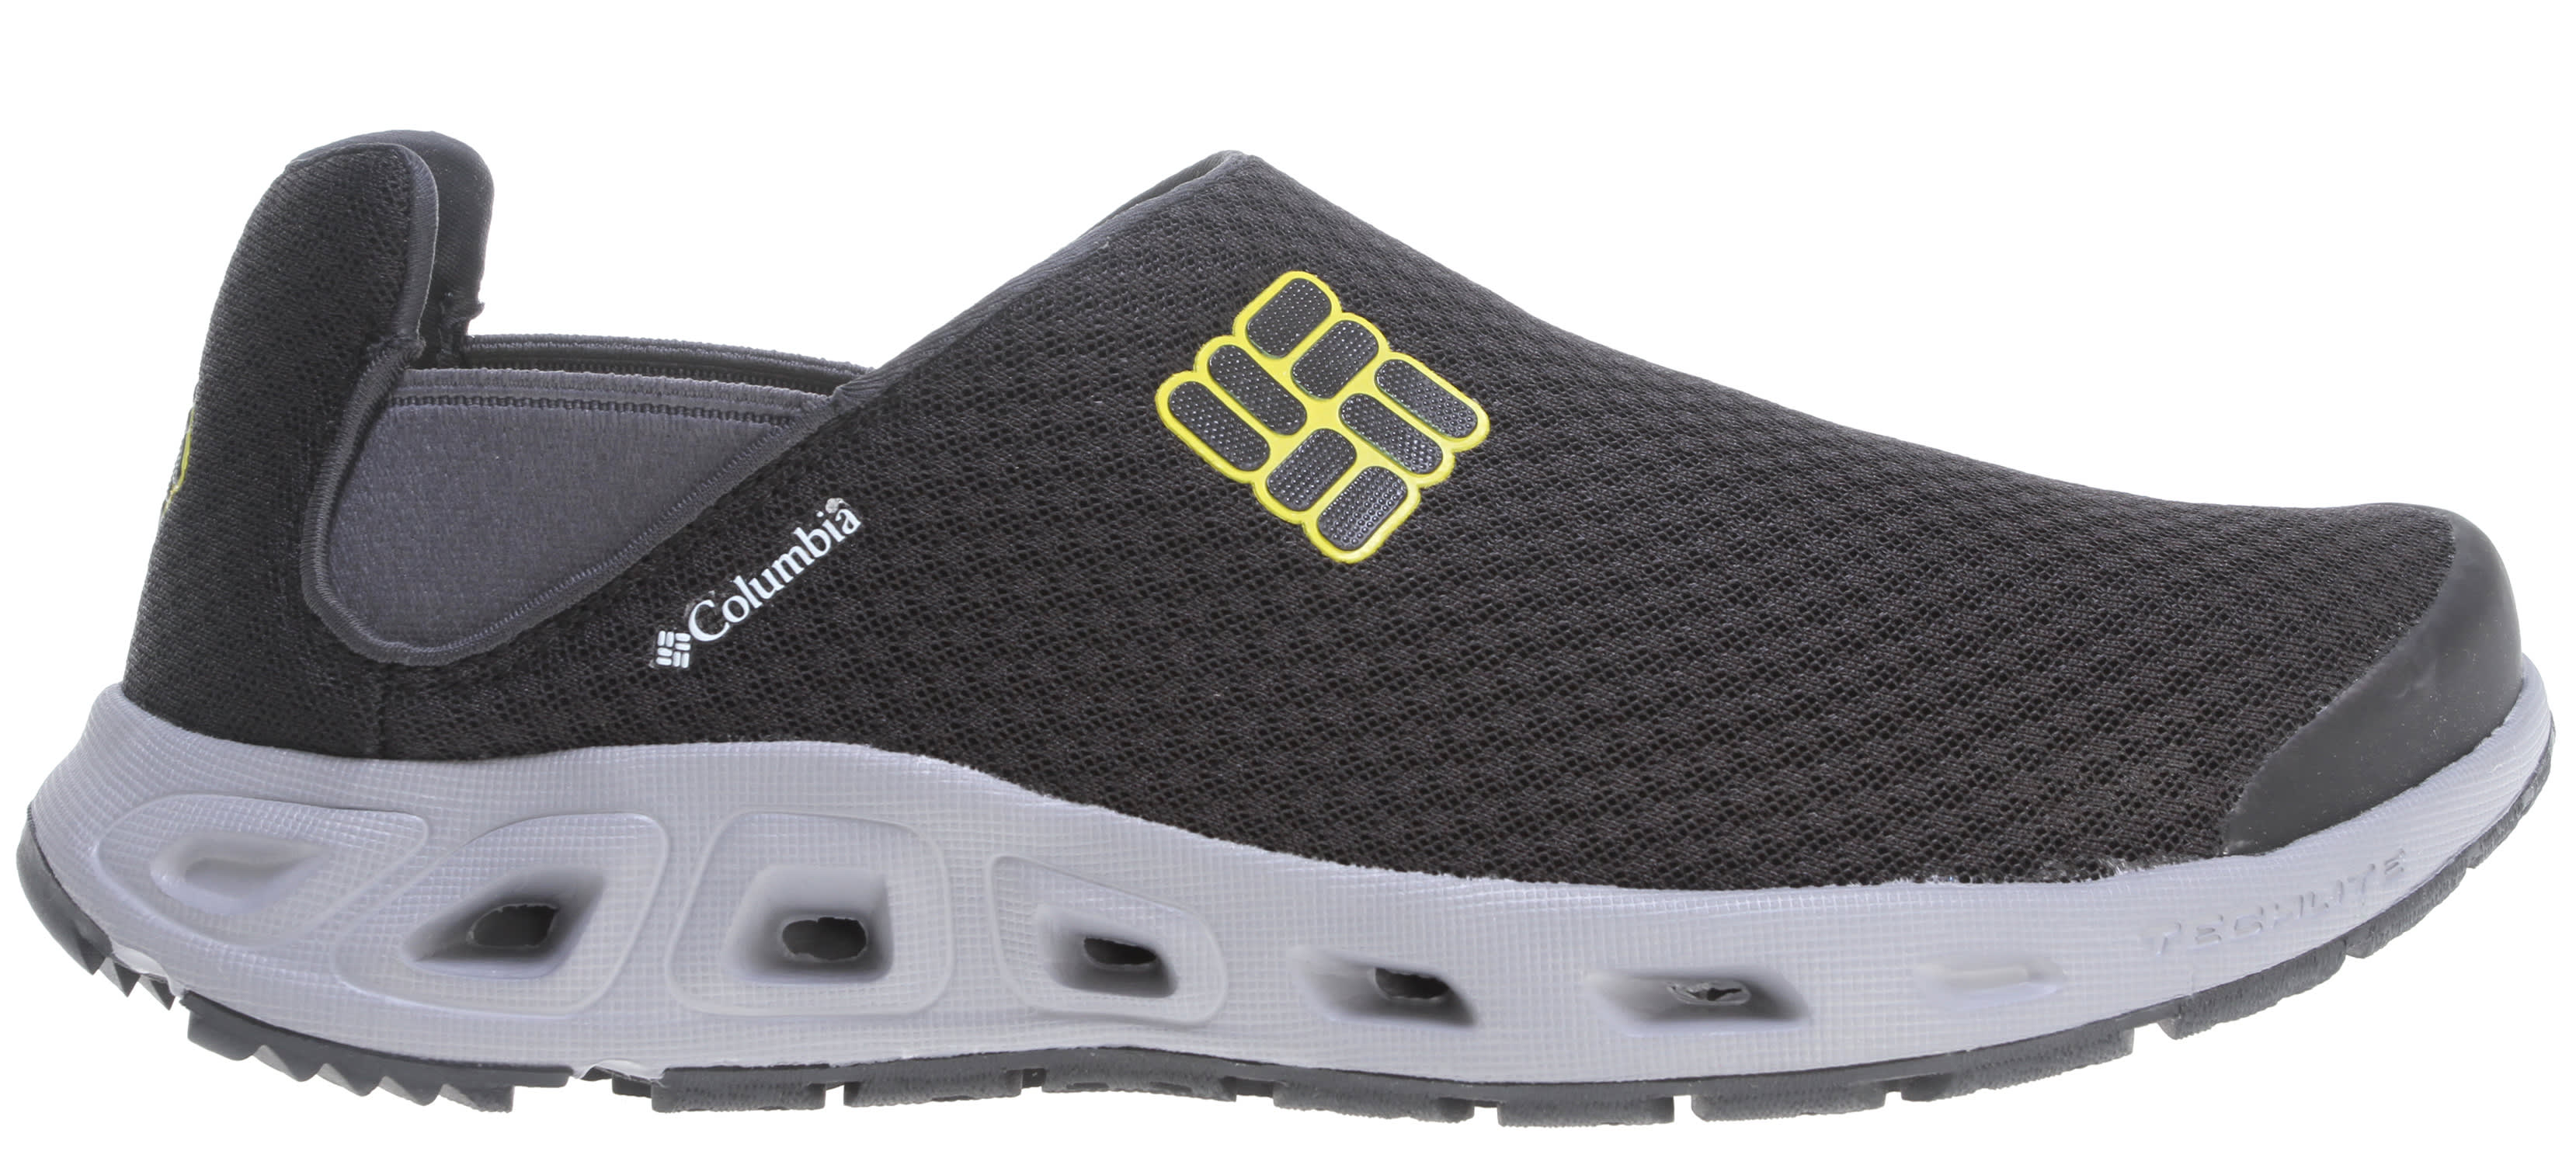 Columbia Shoes Womens